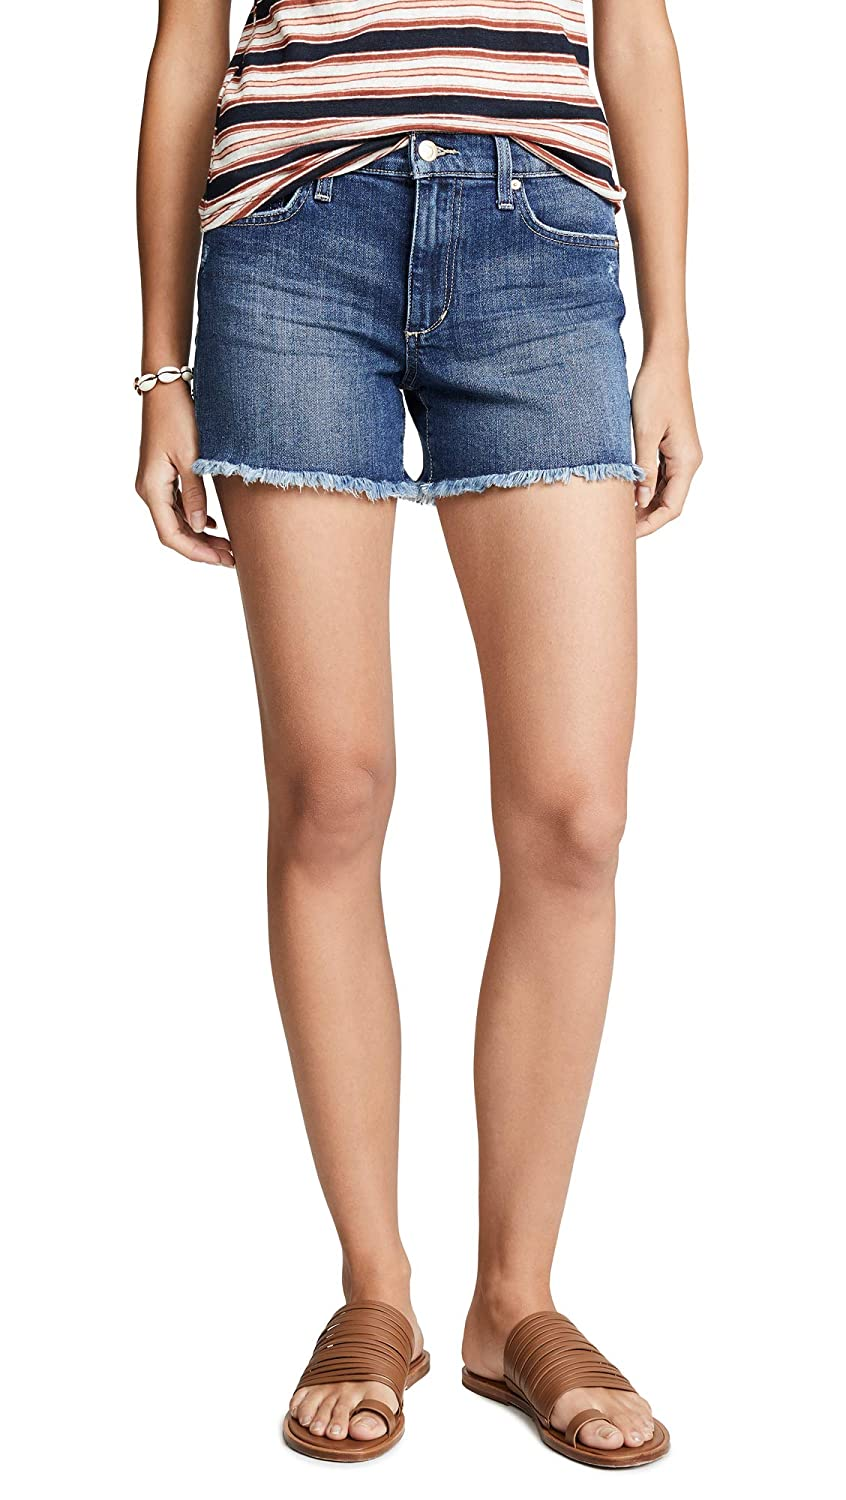 Alma Joe's Jeans Women's The Ozzie Shorts